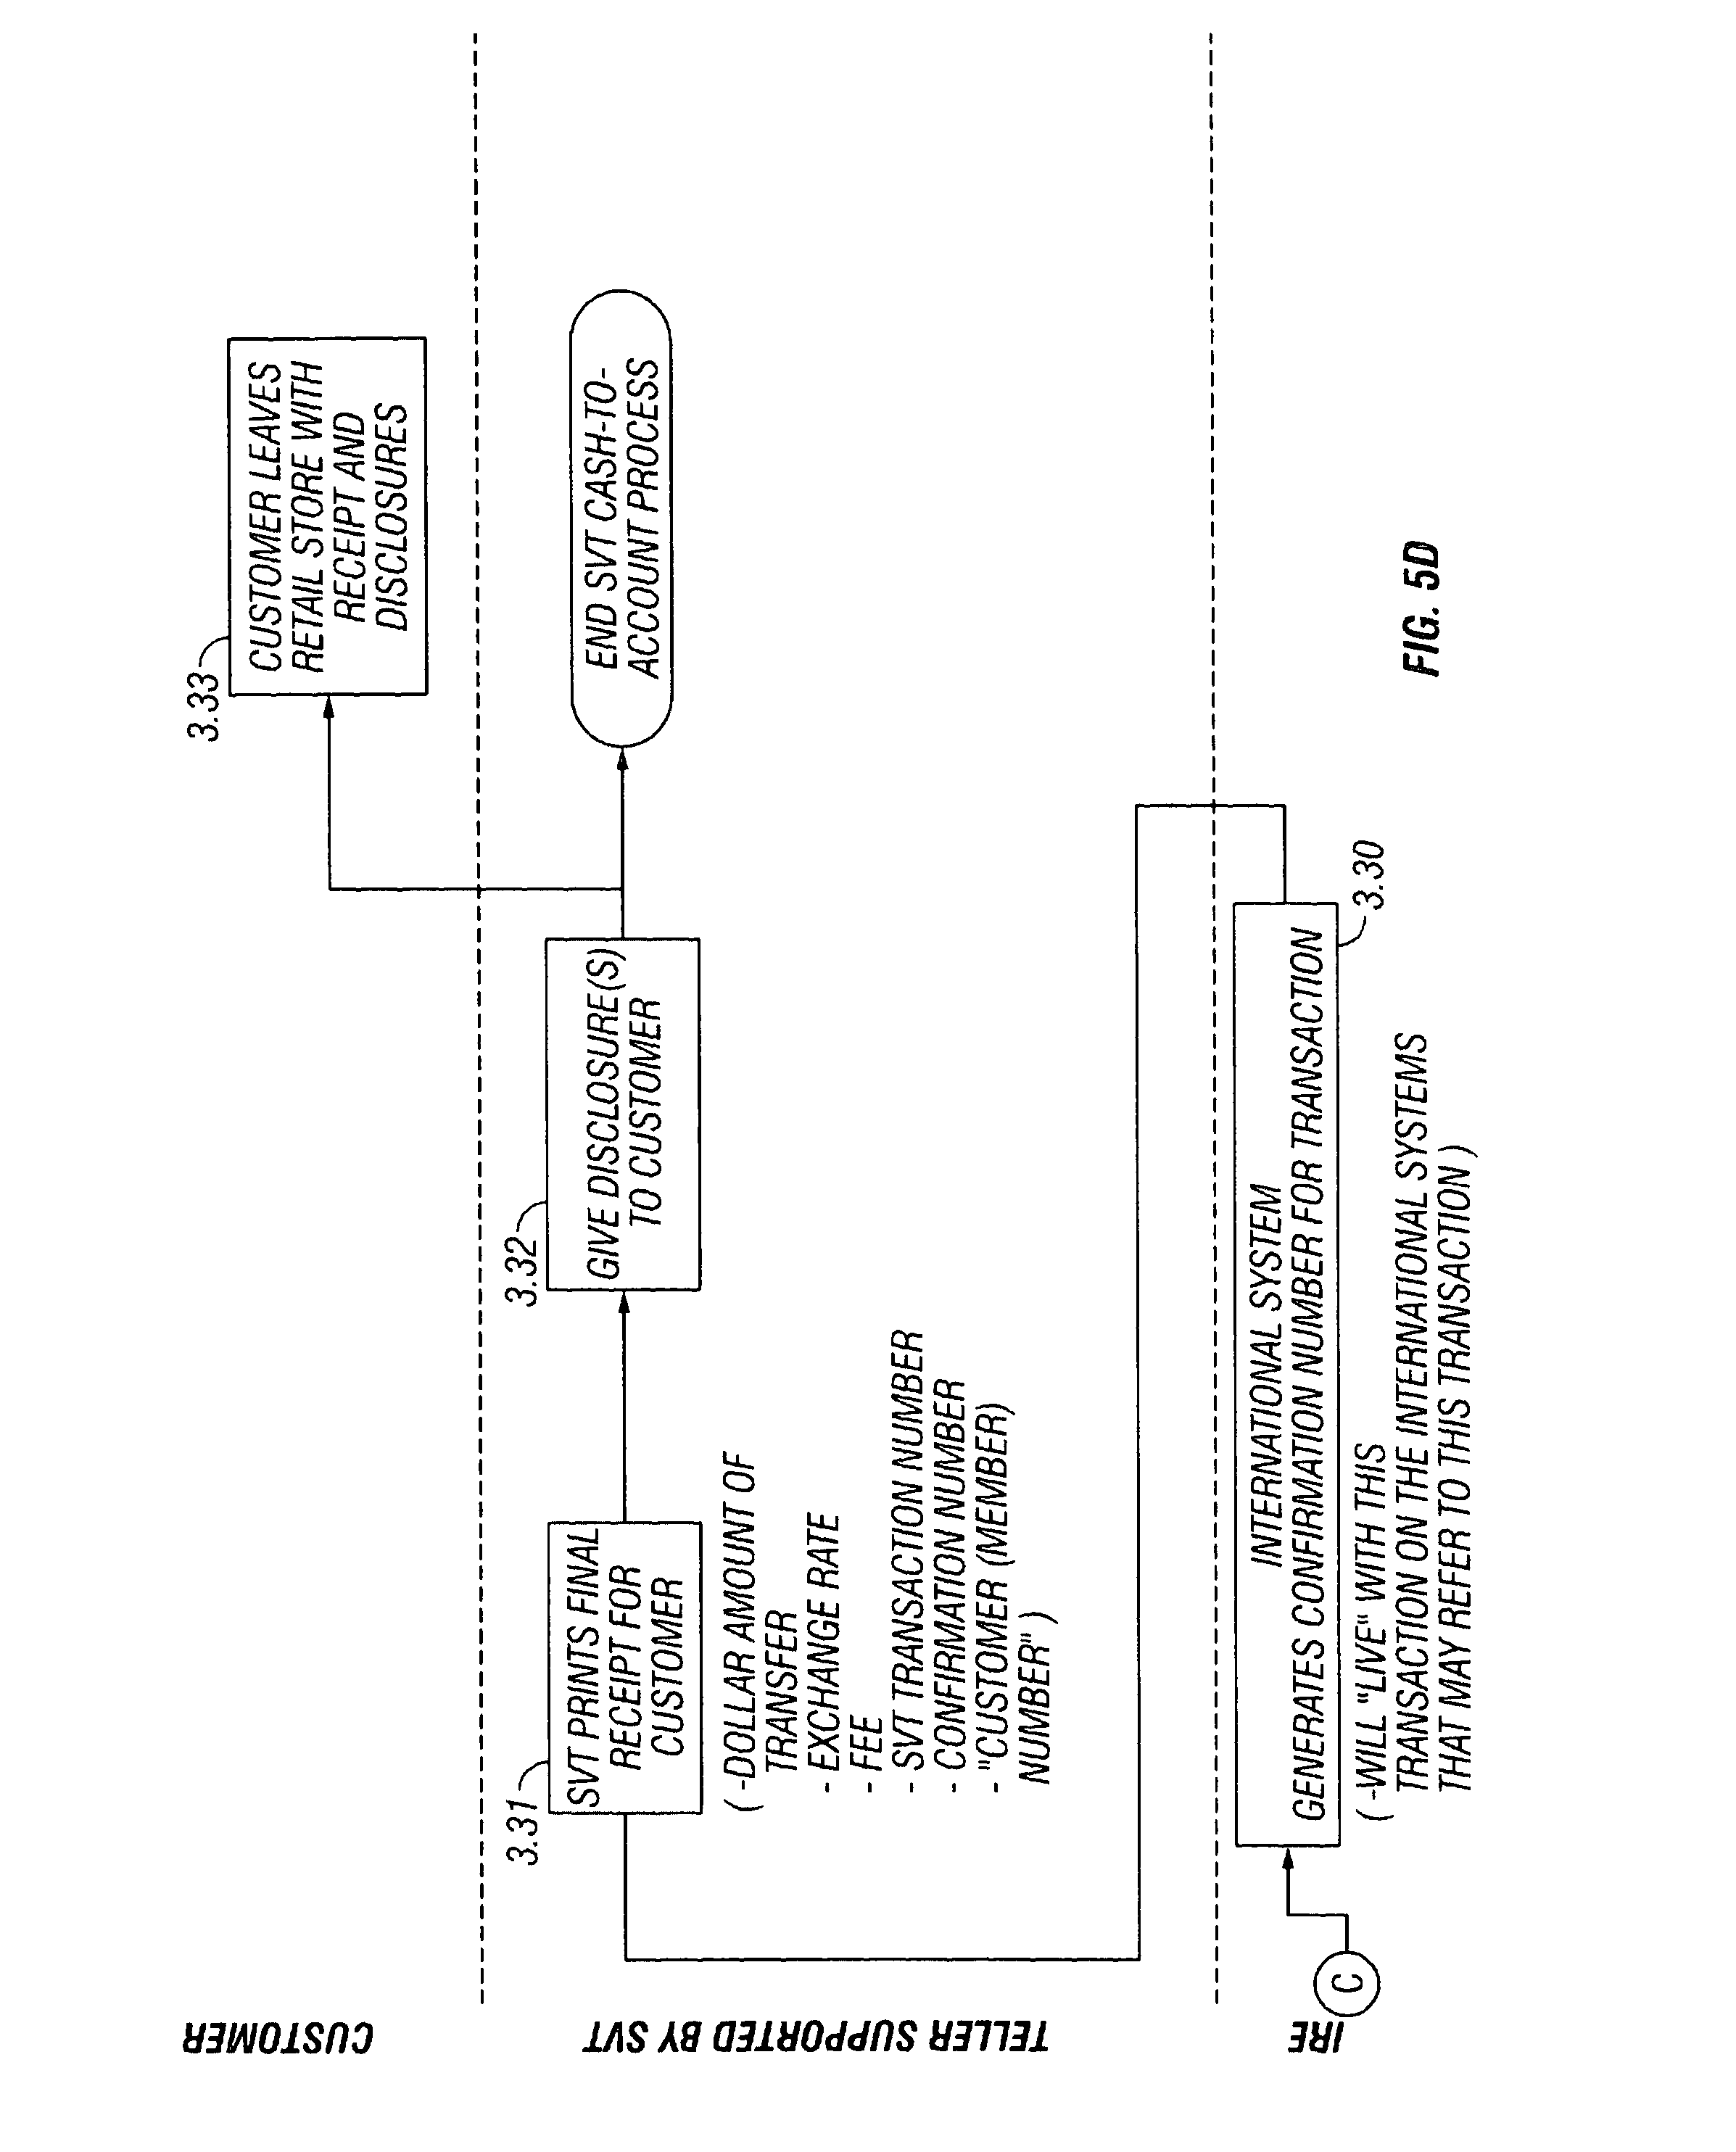 Acknowledge The Receipt Pdf Patent Us  Global Remittance Platform  Google Patents Invoice Payment Details with Taxi Receipt Pdf Patent Drawing Cake Receipt Word